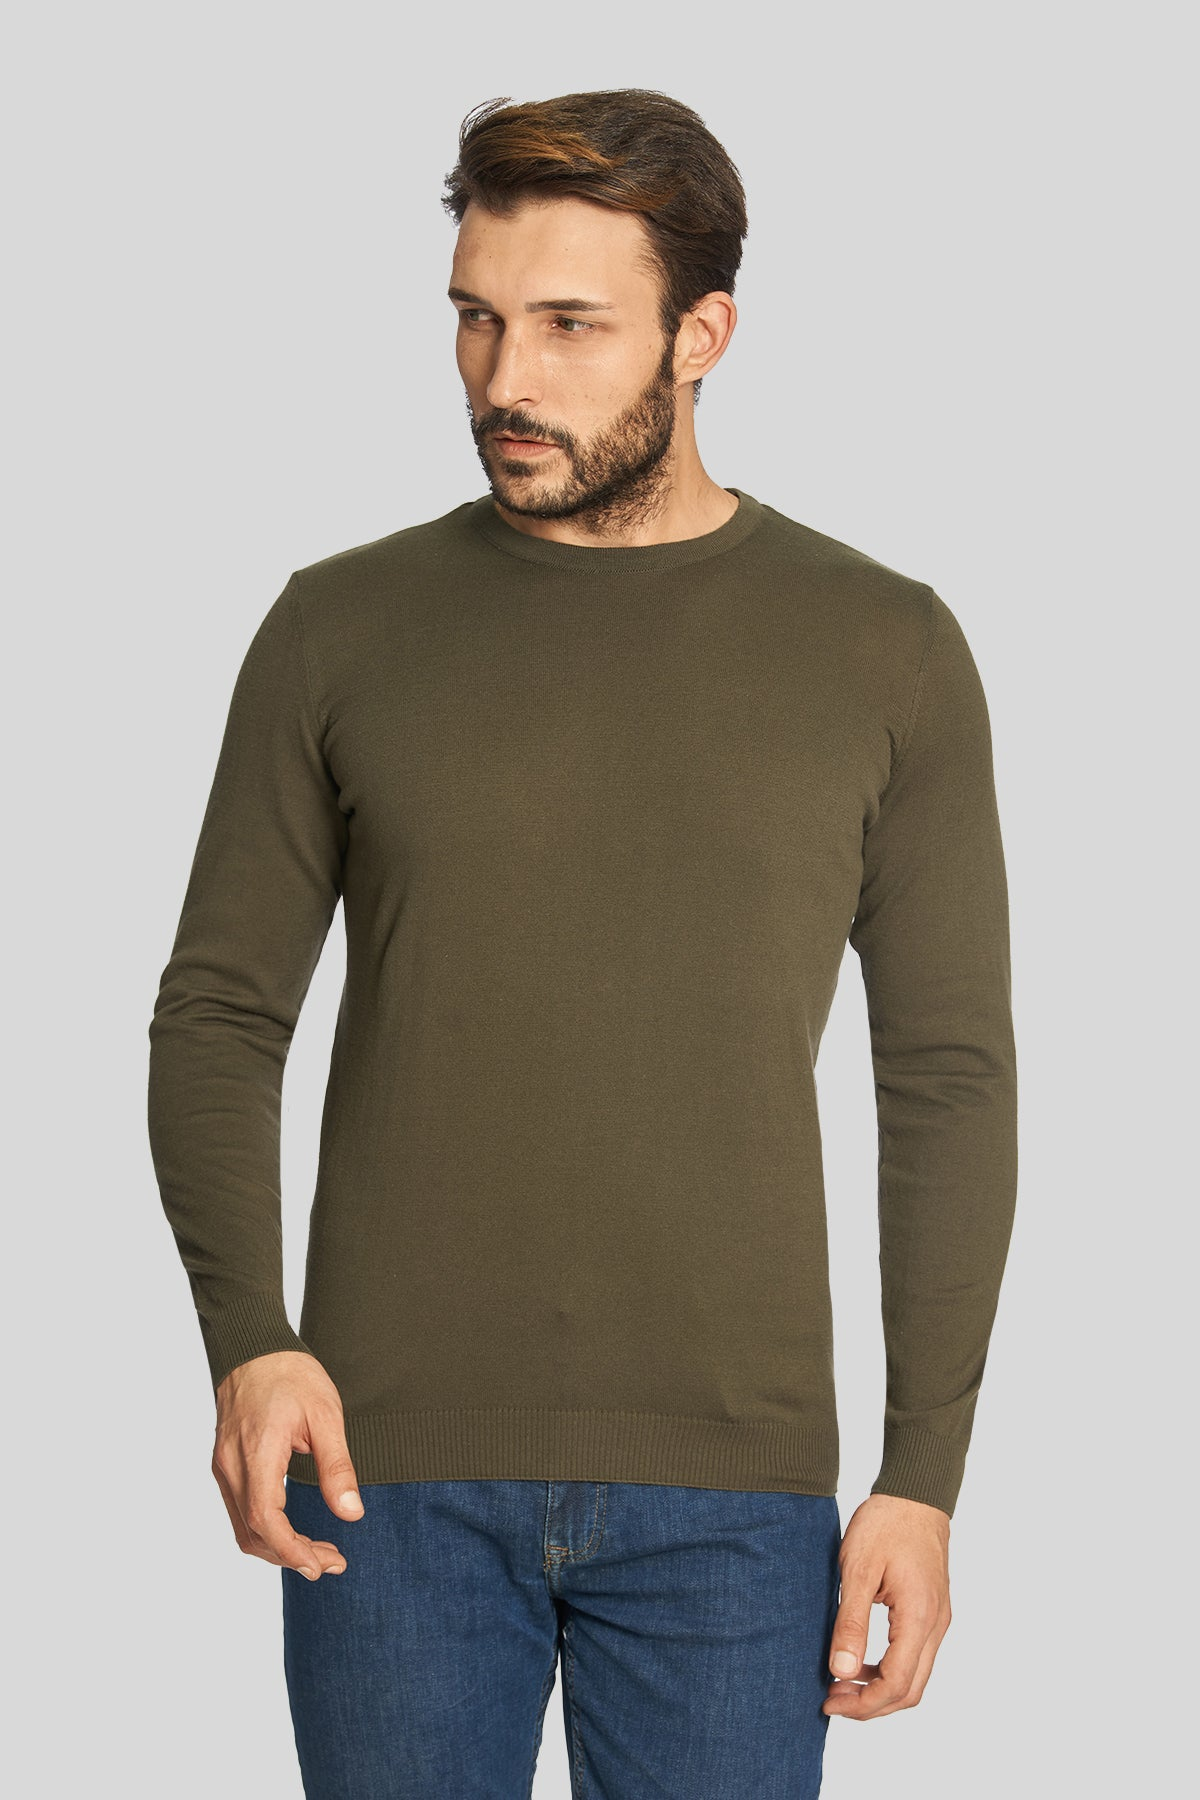 Khaki Crew Neck Cotton Sweater